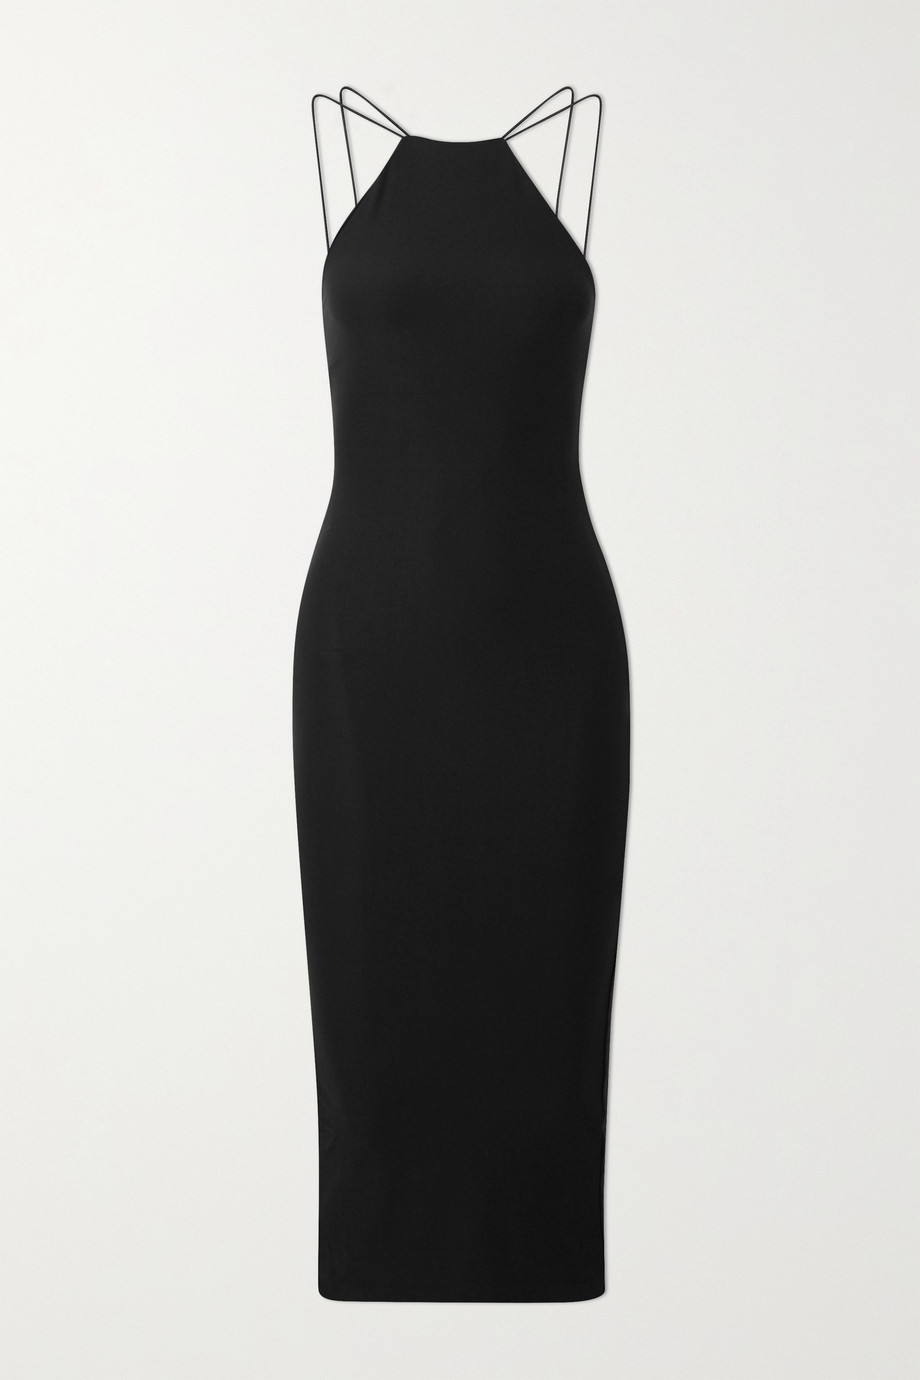 Alix NYC Shiloh stretch-jersey midi dress